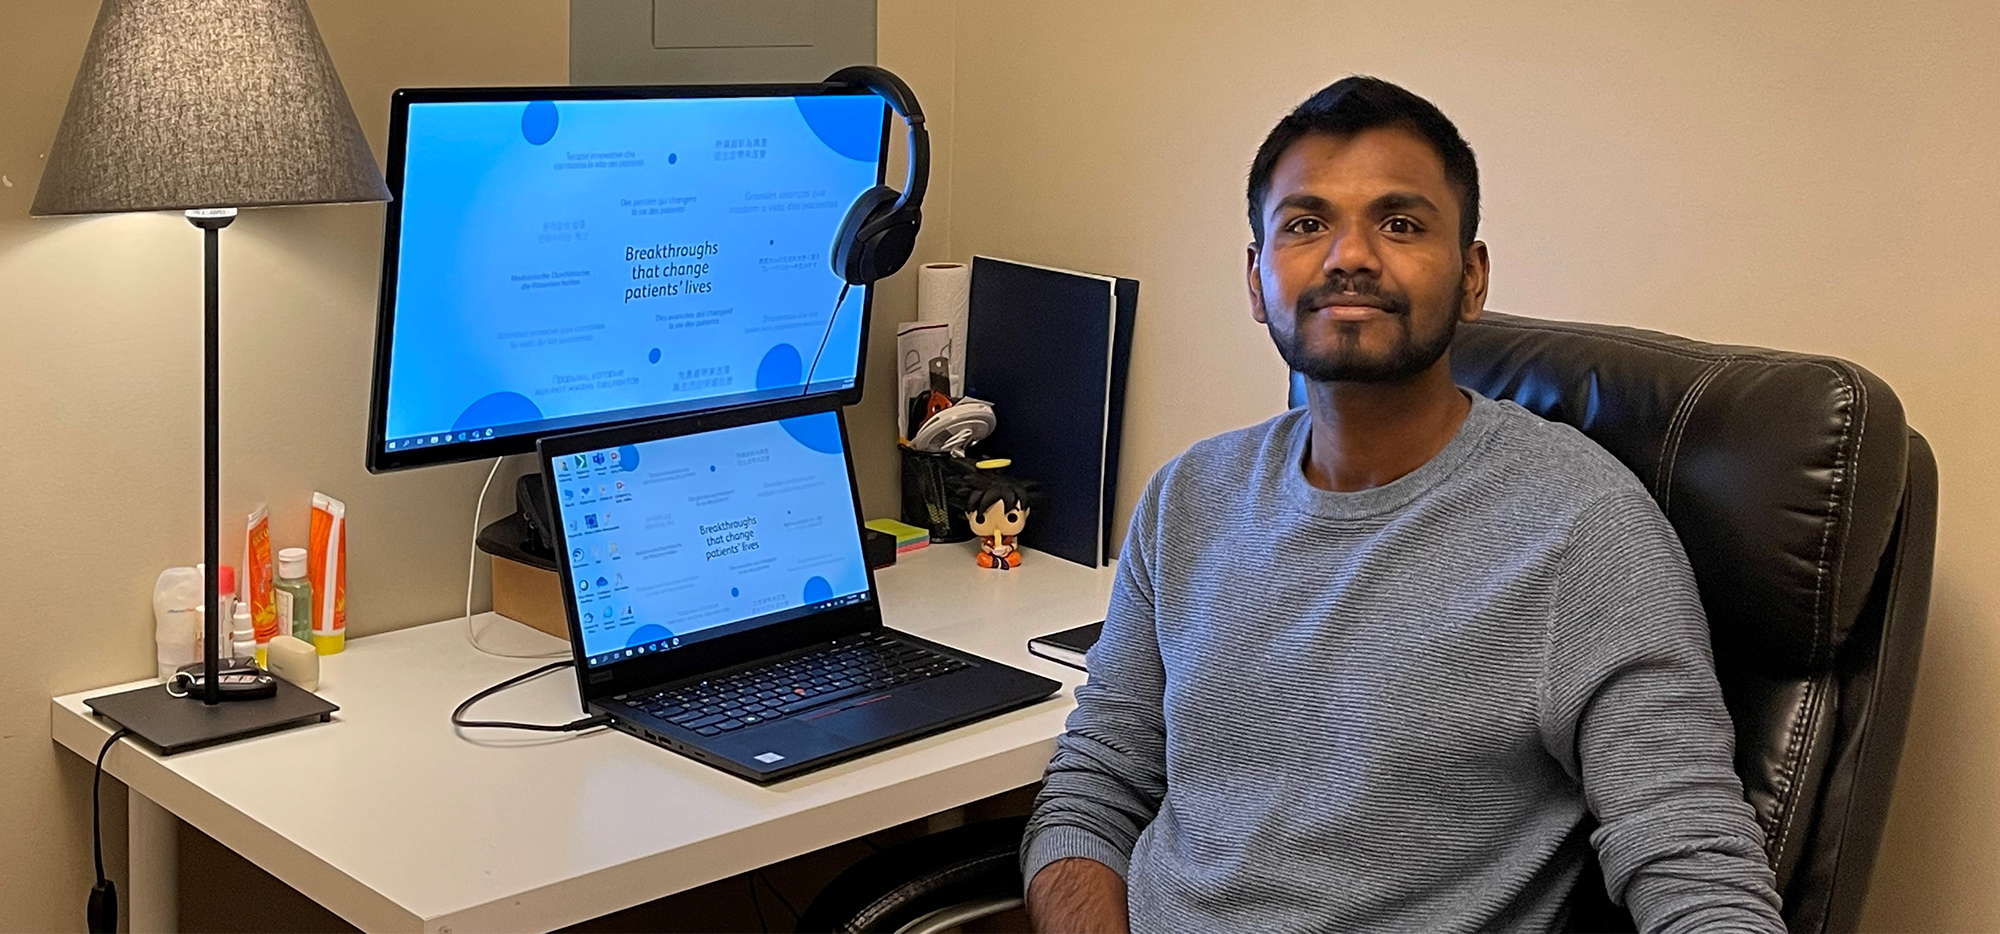 Gokul Pullagura sitting at computer in home office